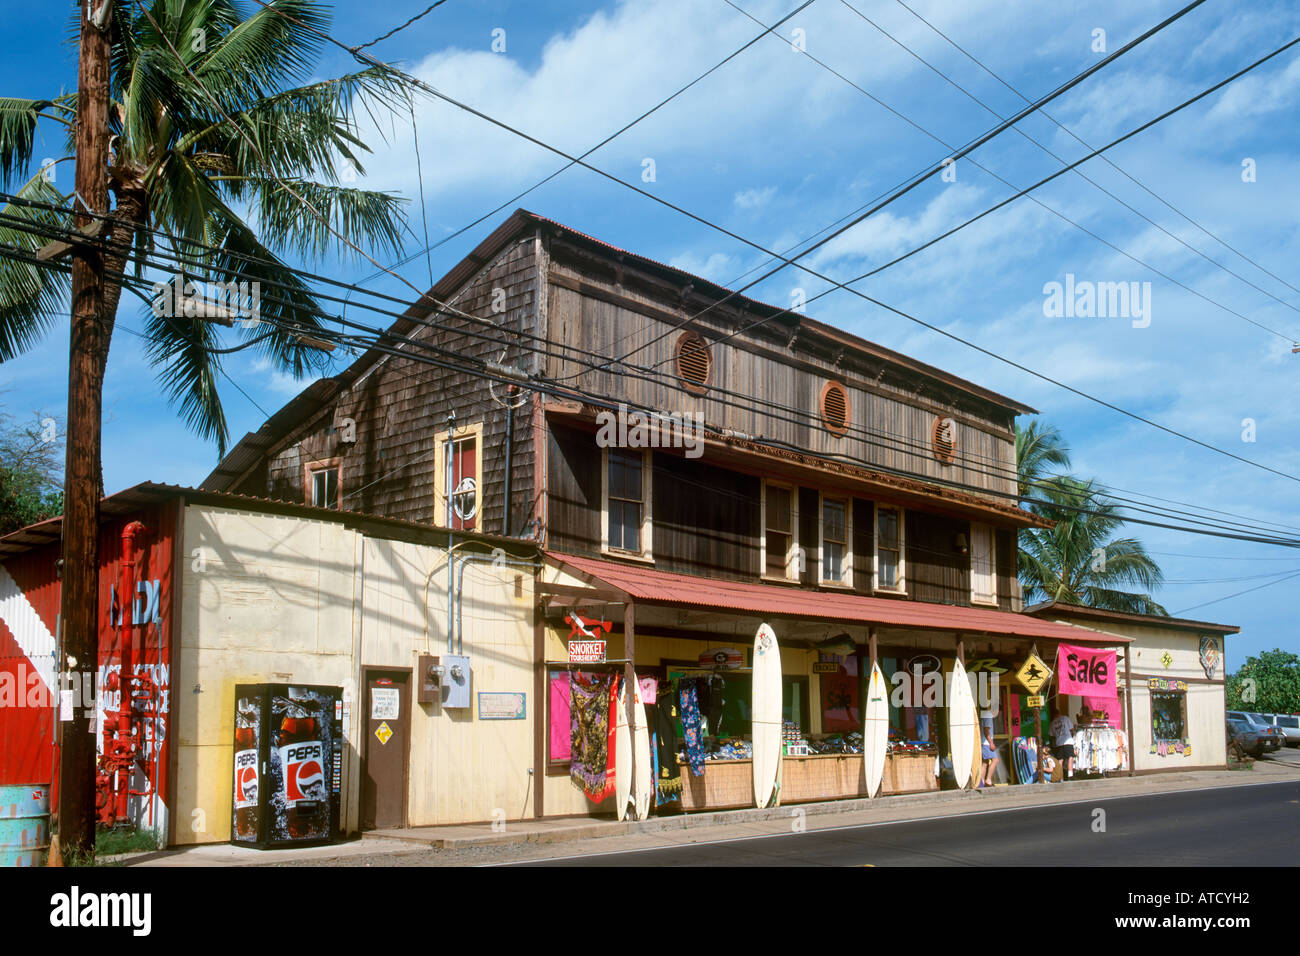 Surf Shop in Haleiwa, North Shore, Oahu, Hawaii, USA - Stock Image